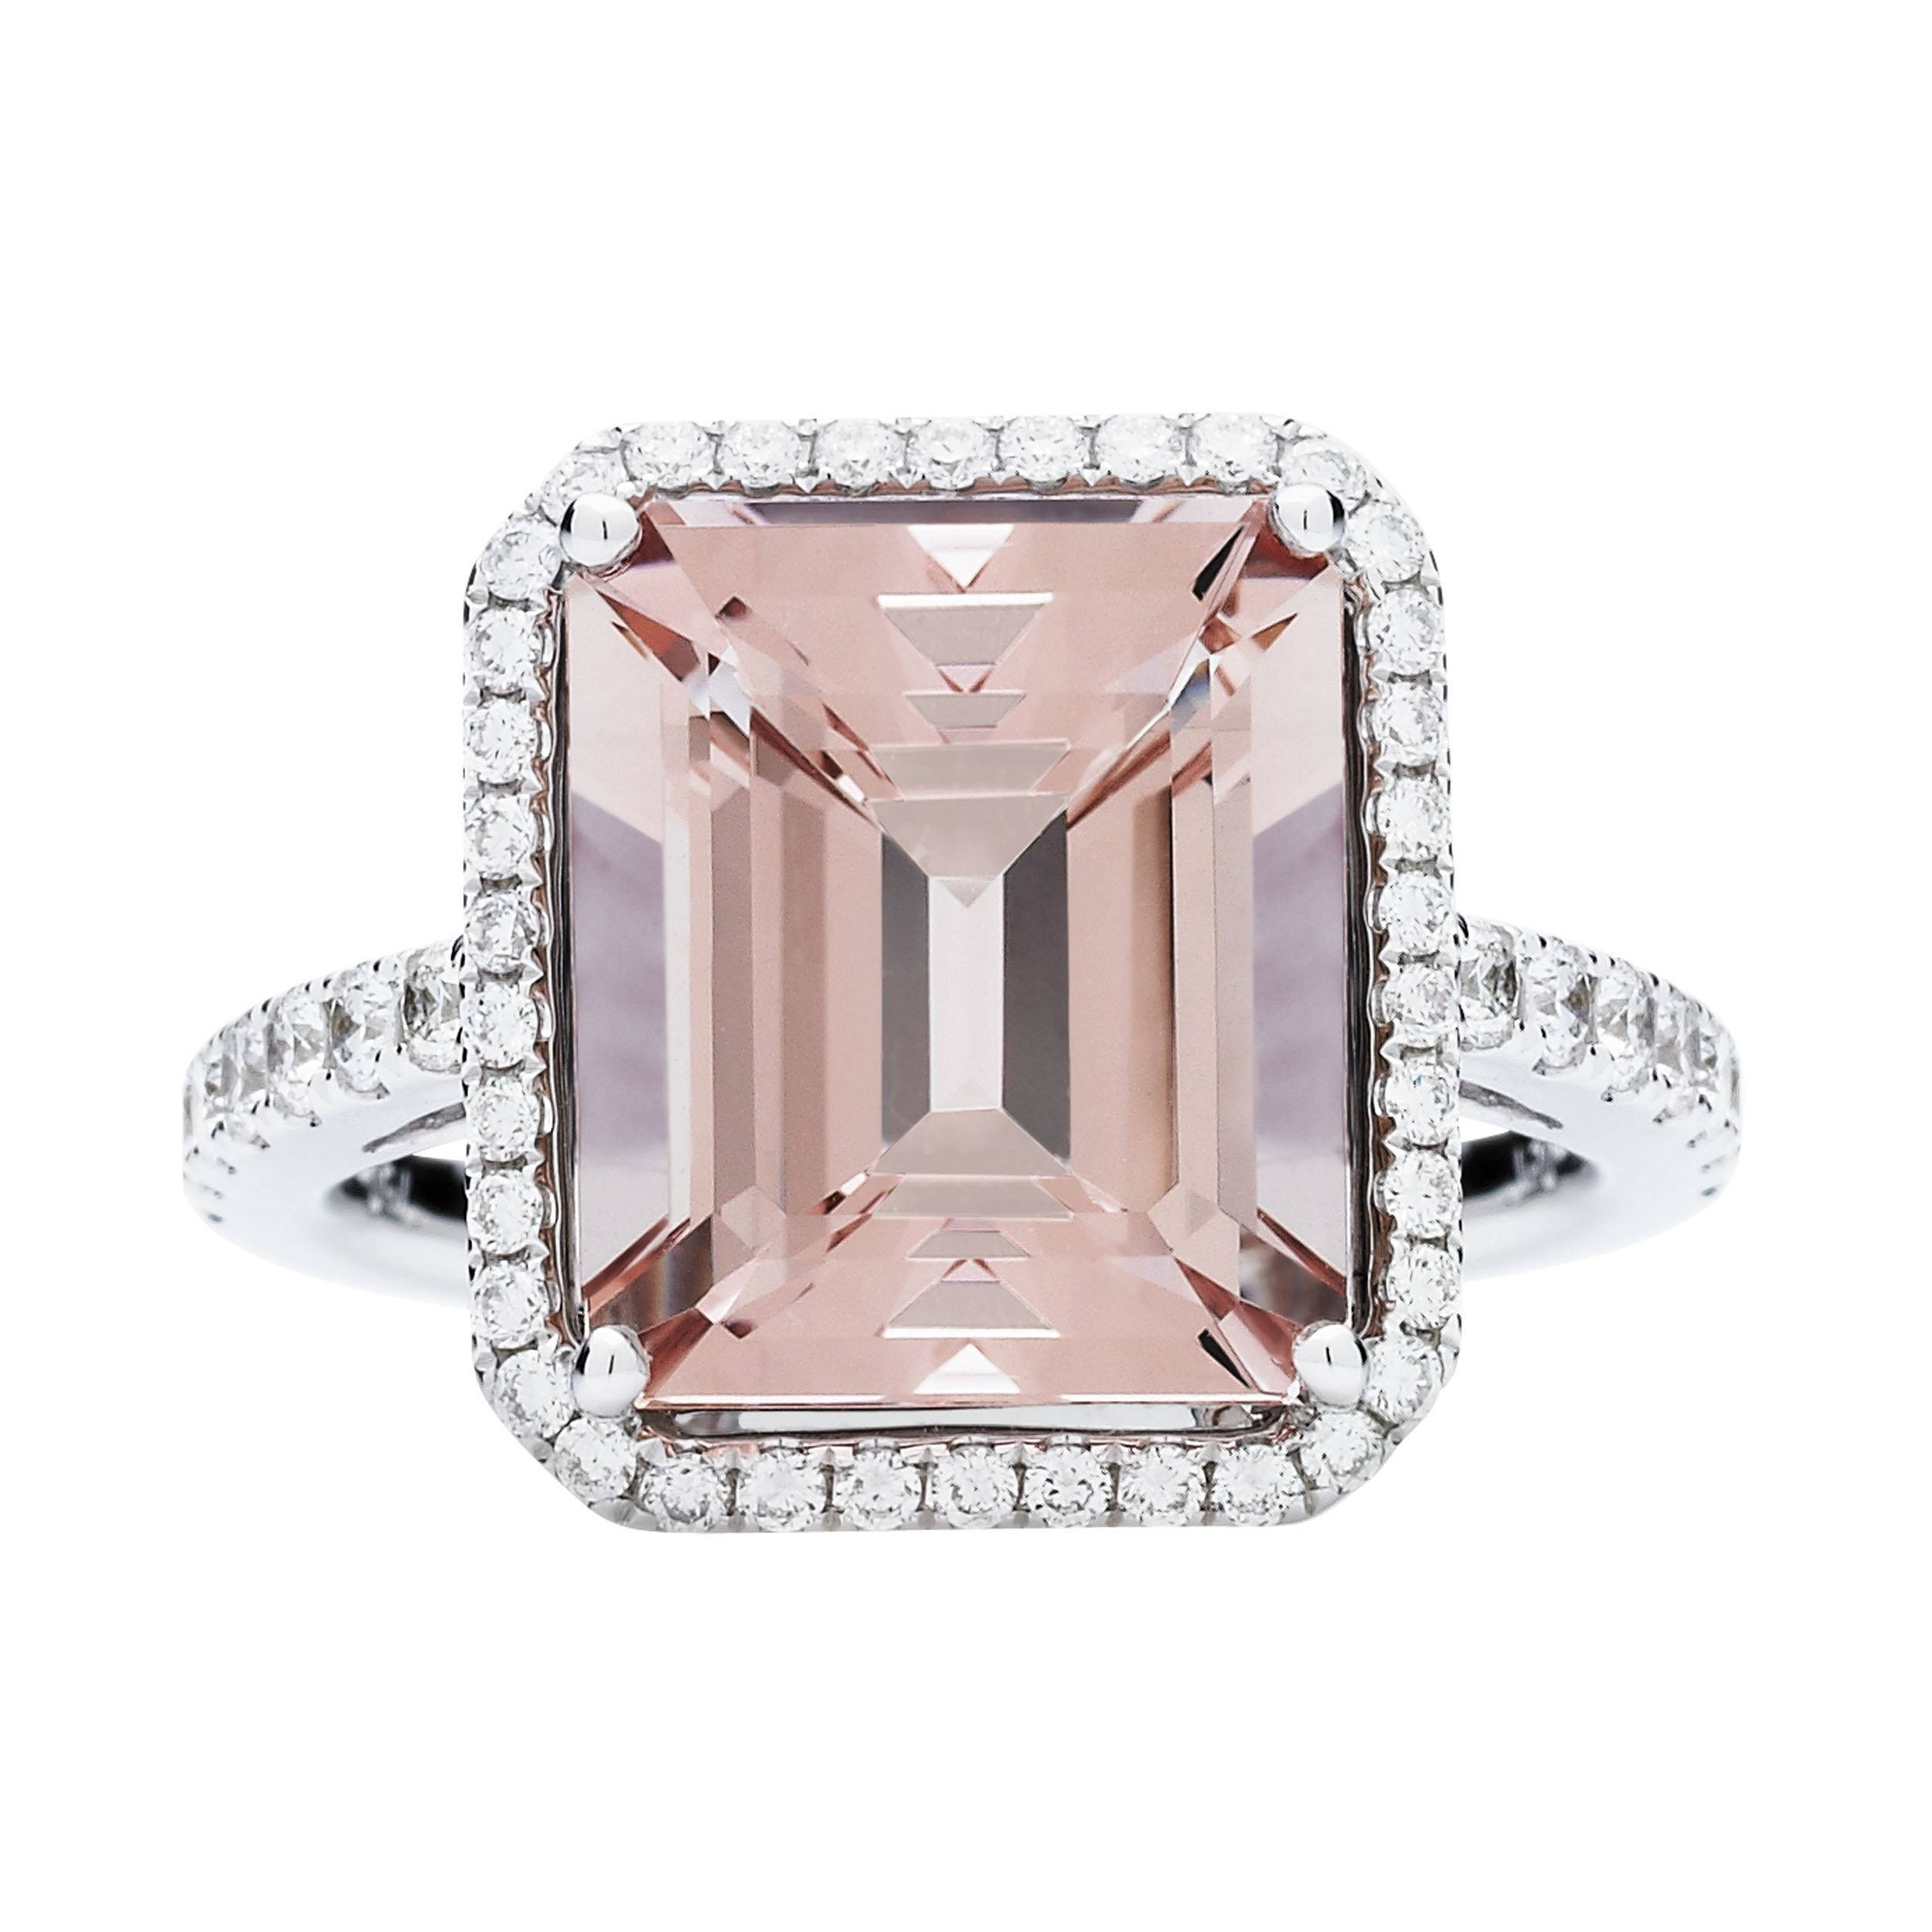 18Ct Pink Morganite & Diamond Rochester Ring |Jan Logan Fine Jewellery Inside Rochester Engagement Rings (View 1 of 15)